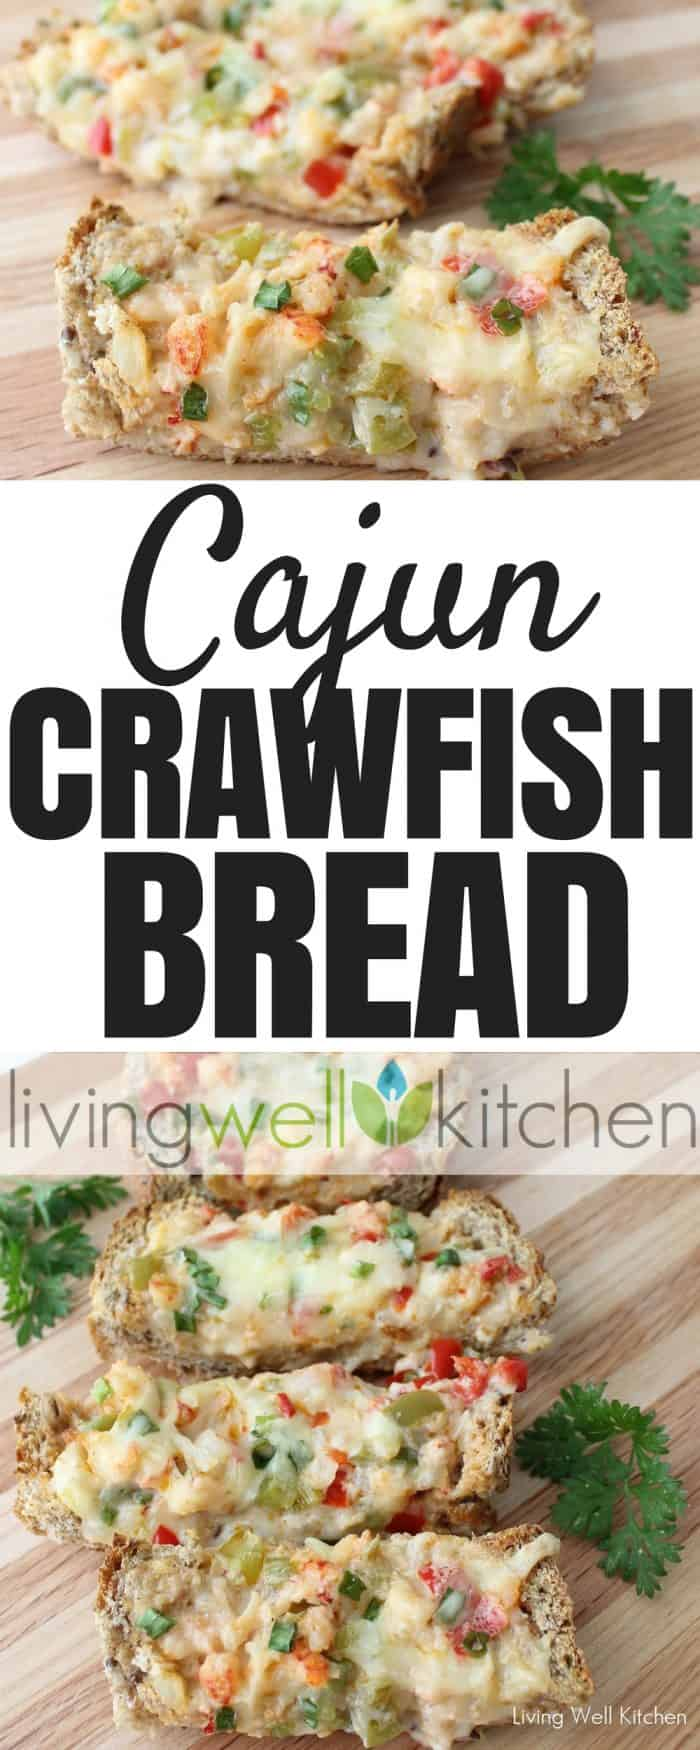 Cajun Crawfish Bread recipe from @memeinge is cheesy, flavorful, and full of veggies. Great as an appetizer, lunch or dinner served with a side salad! Works well with frozen crawfish, too. Can be gluten free. #crawfish #seafood #appetizer #cajun